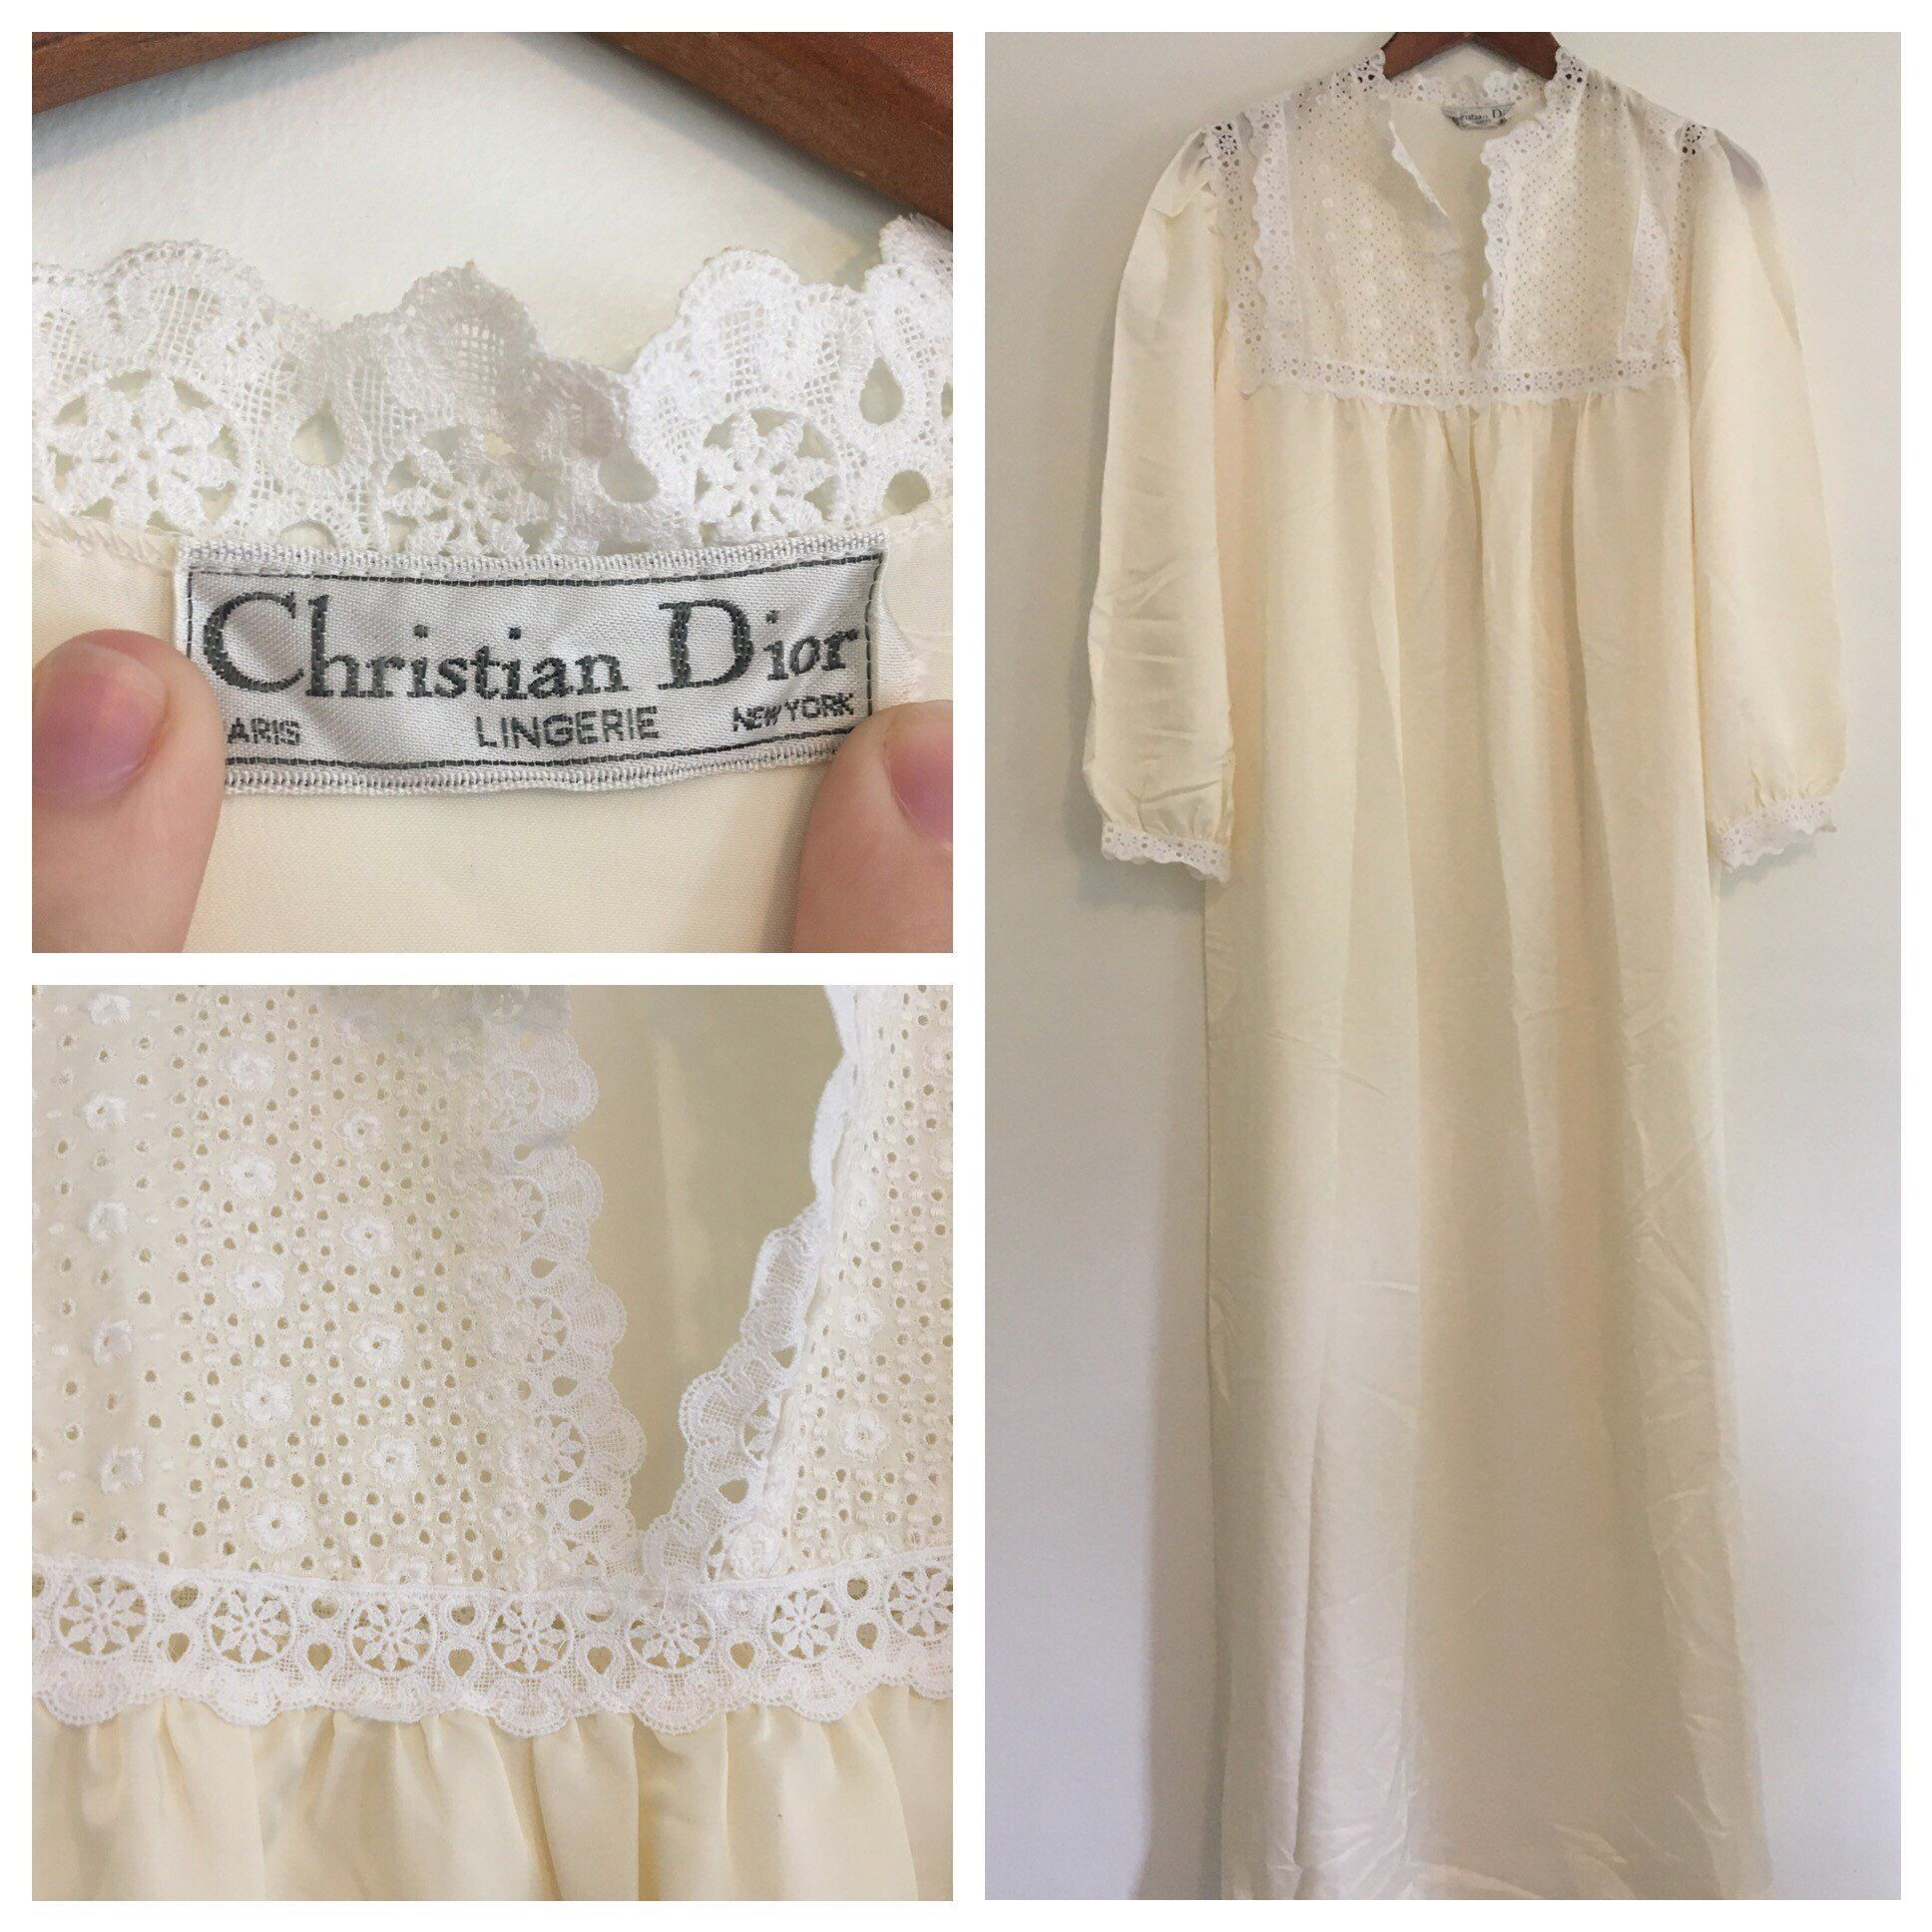 40d3aee5c20 Vintage 70s Ivory Christian Dior Lingerie Night Gown Nightie Silky Lace  Flowy Long Sleeve Maxi Medium